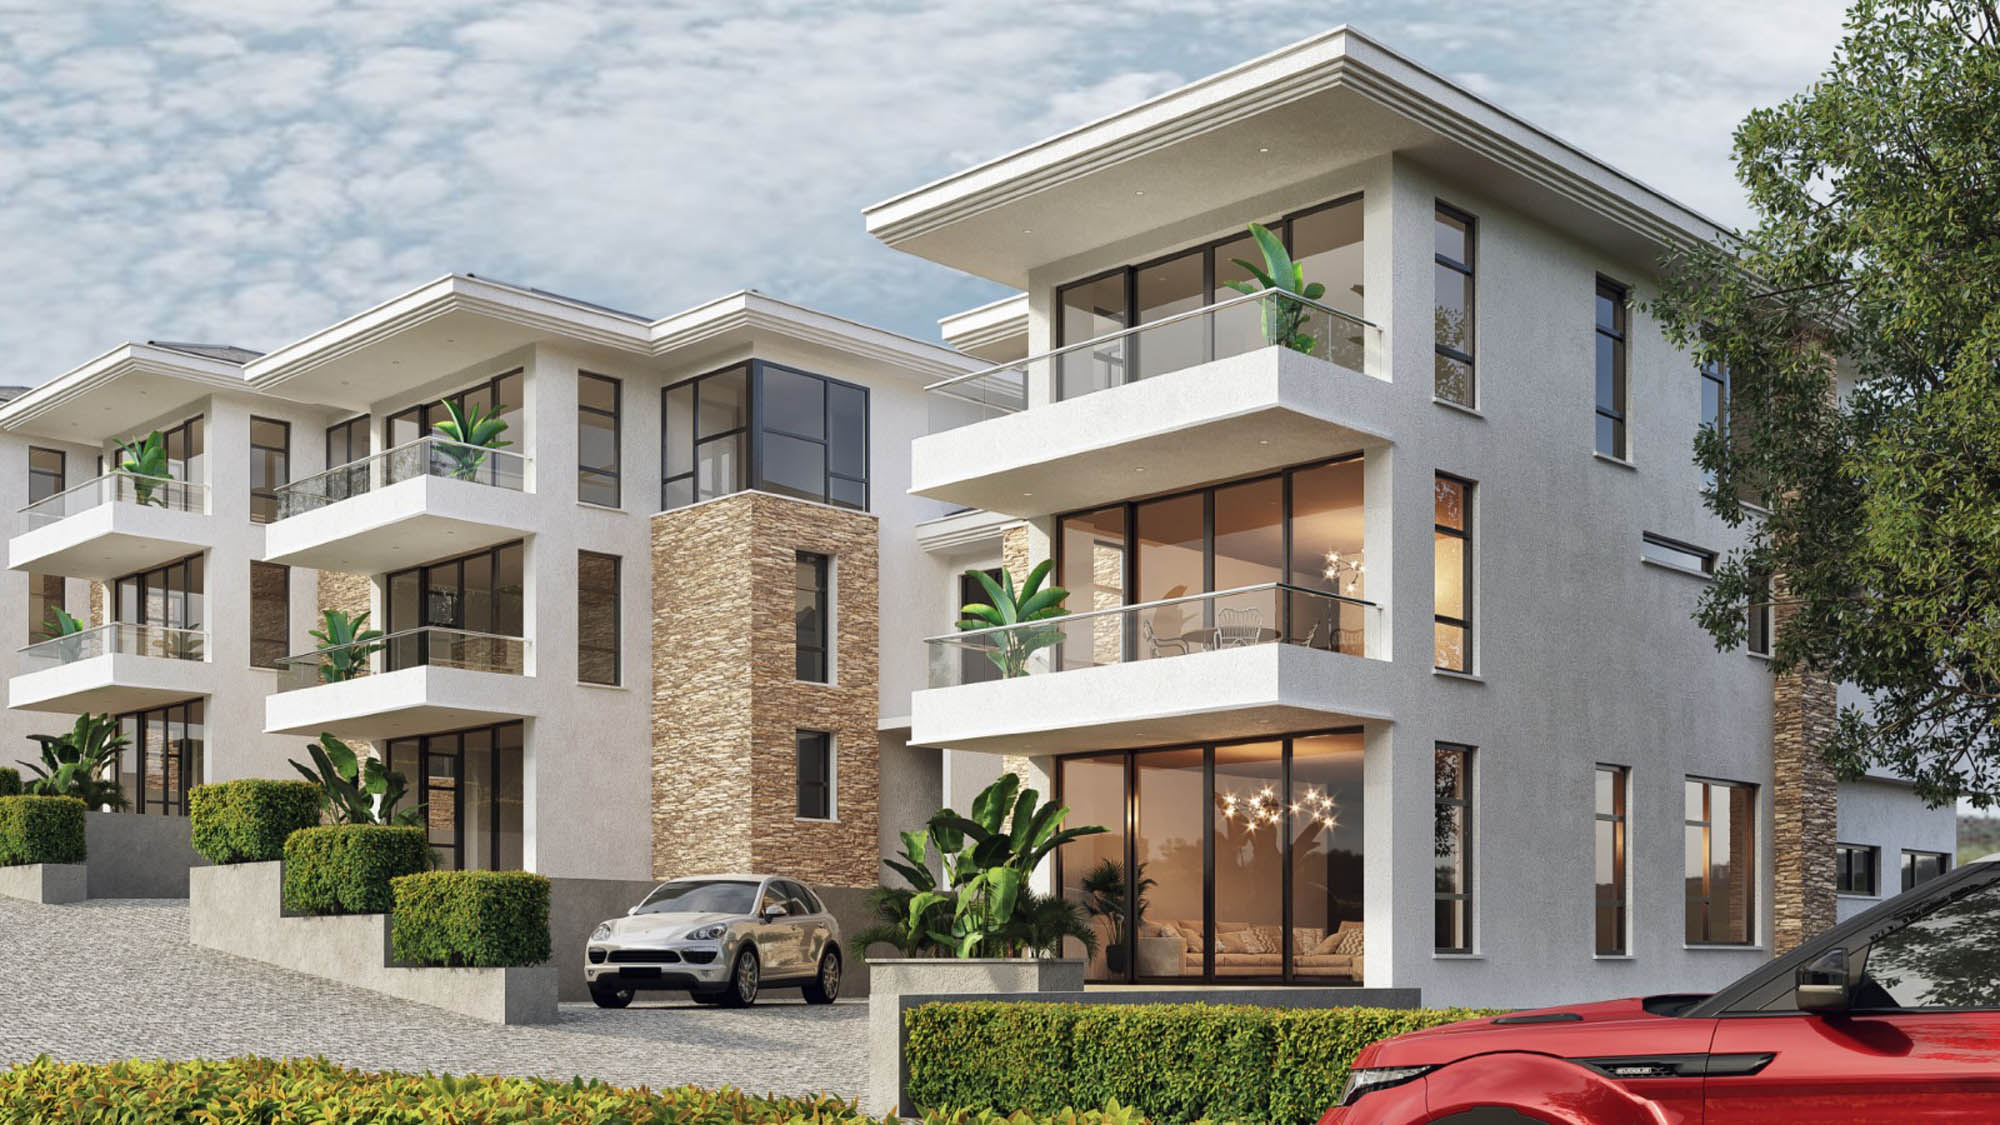 New 5 Bedroom Townhouses for Sale in Lavington